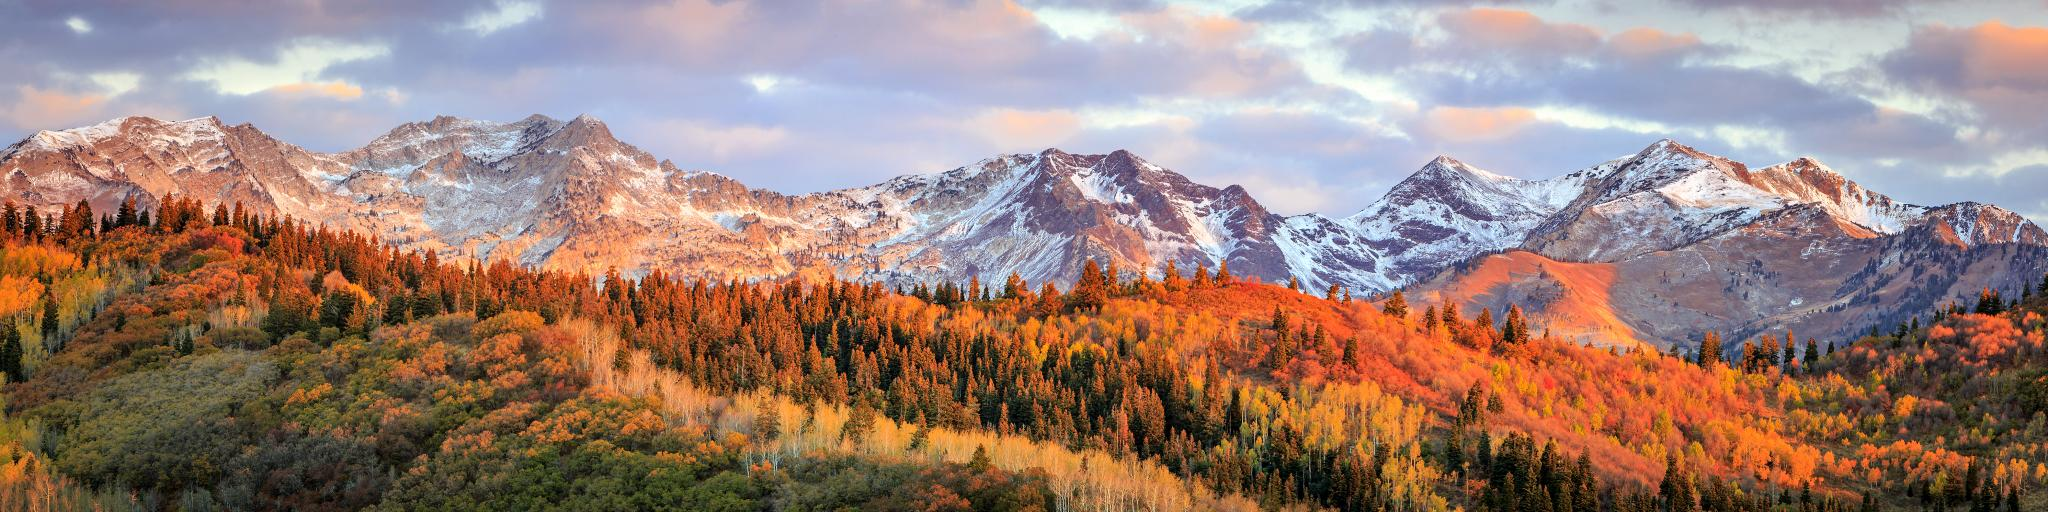 Wasatch Mountains in the fall as you approach Salt Lake City on the road trip from Denver.